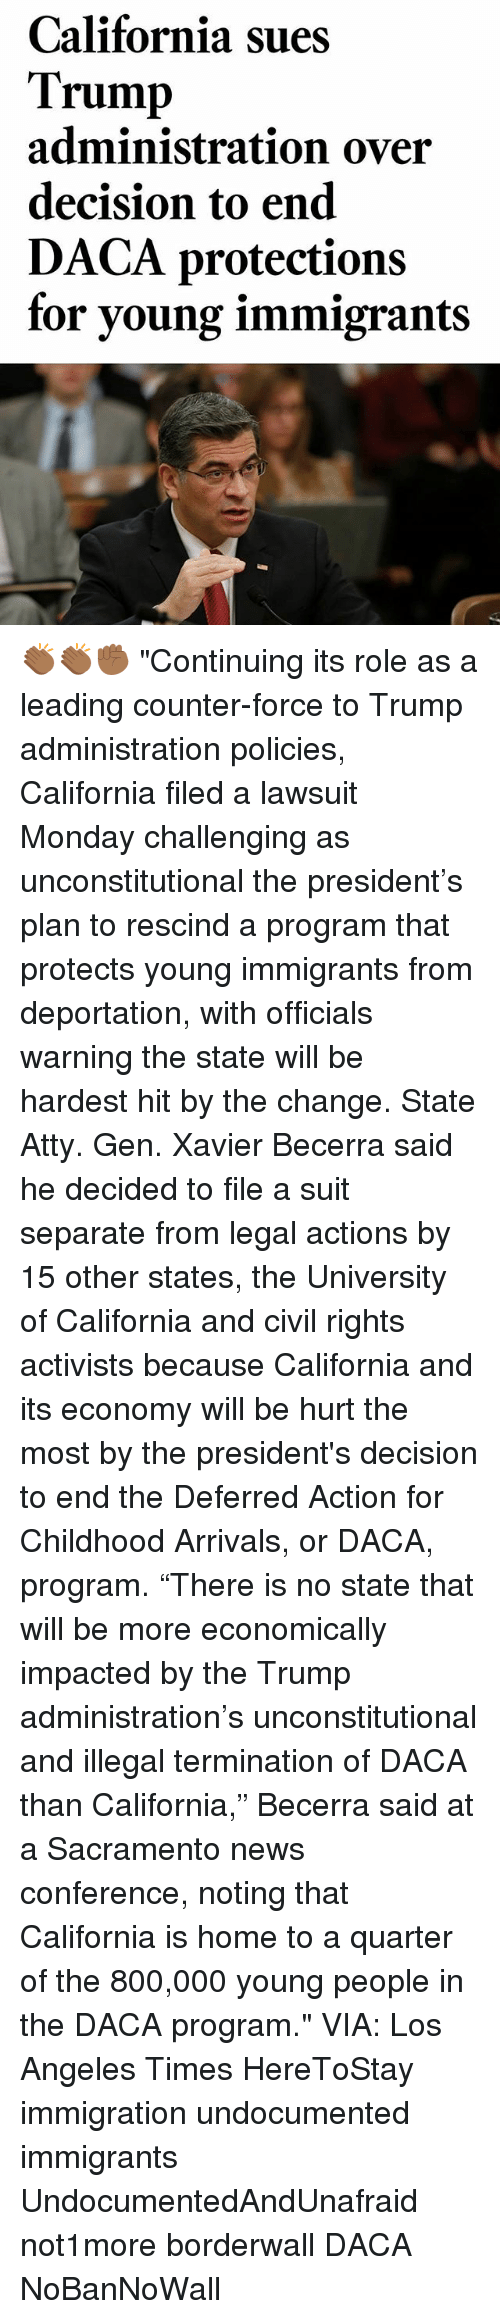 "Memes, News, and California: California sues  Trump  administration over  decision to end  DACA protections  for young immigrant:s 👏🏾👏🏾✊🏾 ""Continuing its role as a leading counter-force to Trump administration policies, California filed a lawsuit Monday challenging as unconstitutional the president's plan to rescind a program that protects young immigrants from deportation, with officials warning the state will be hardest hit by the change. State Atty. Gen. Xavier Becerra said he decided to file a suit separate from legal actions by 15 other states, the University of California and civil rights activists because California and its economy will be hurt the most by the president's decision to end the Deferred Action for Childhood Arrivals, or DACA, program. ""There is no state that will be more economically impacted by the Trump administration's unconstitutional and illegal termination of DACA than California,"" Becerra said at a Sacramento news conference, noting that California is home to a quarter of the 800,000 young people in the DACA program."" VIA: Los Angeles Times HereToStay immigration undocumented immigrants UndocumentedAndUnafraid not1more borderwall DACA NoBanNoWall"